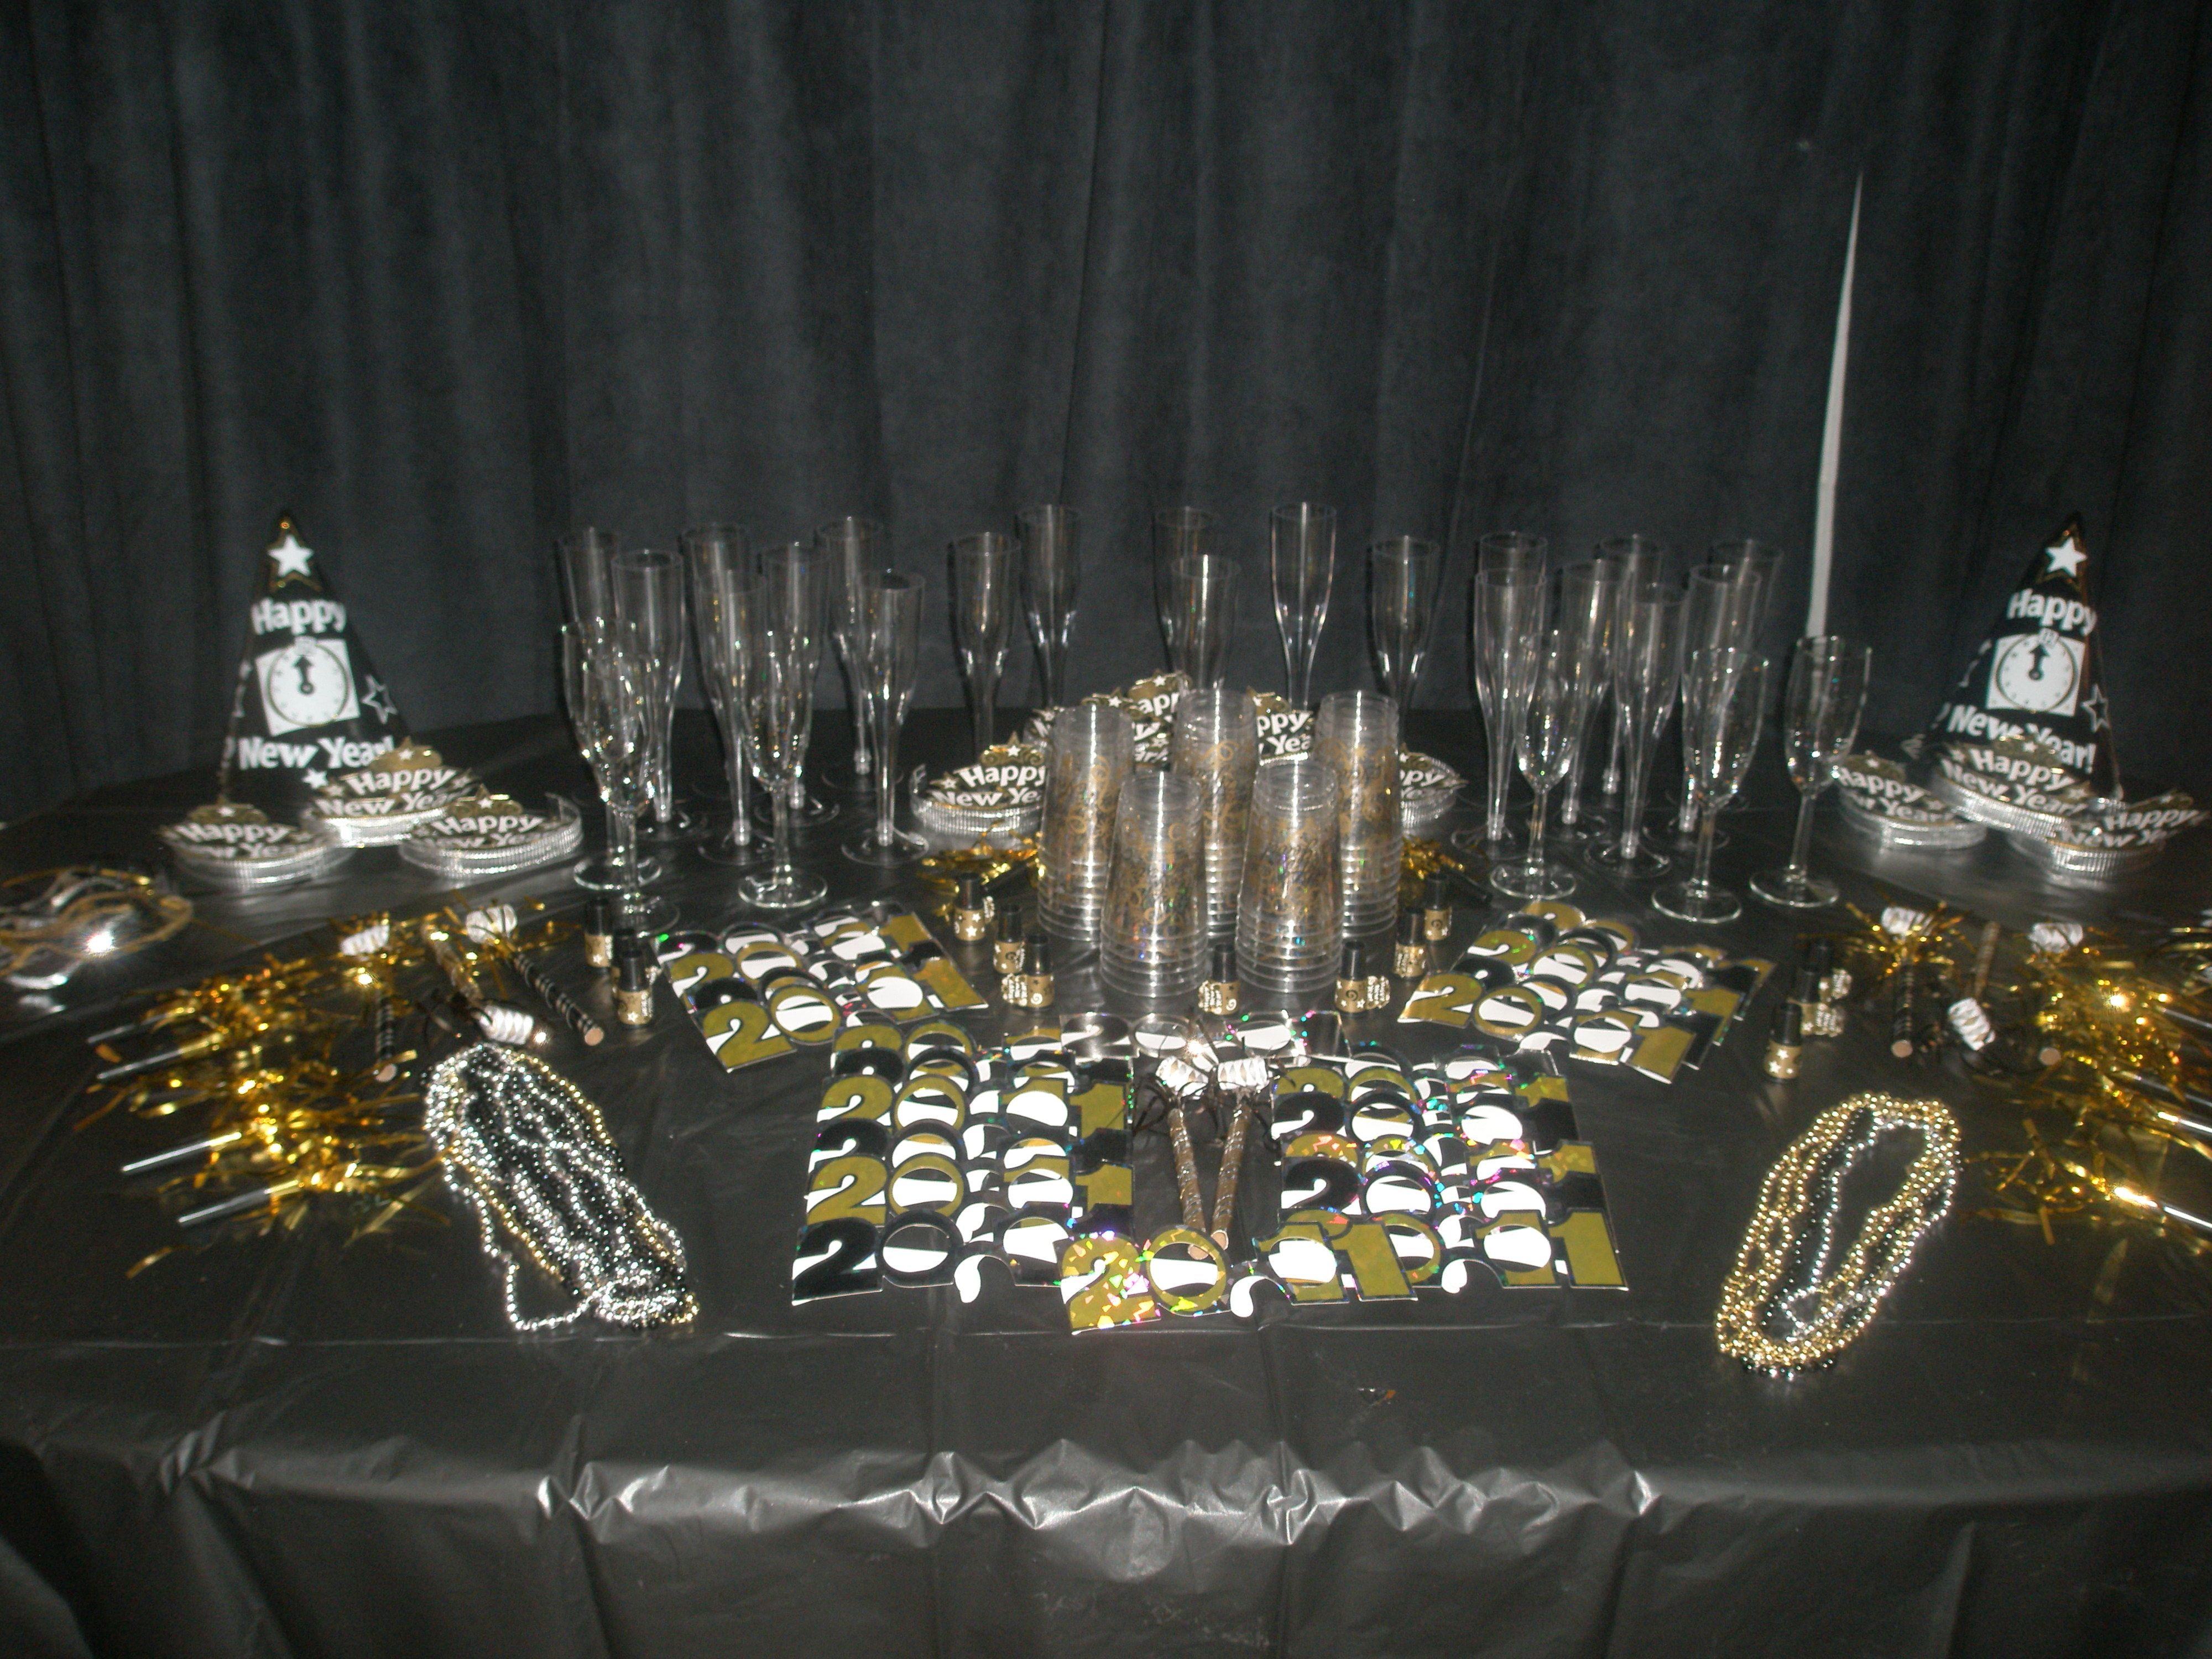 New Years Eve House Party Classic Silver And Gold Theme Party Table Company Christmas Party Nye Party Event Planning